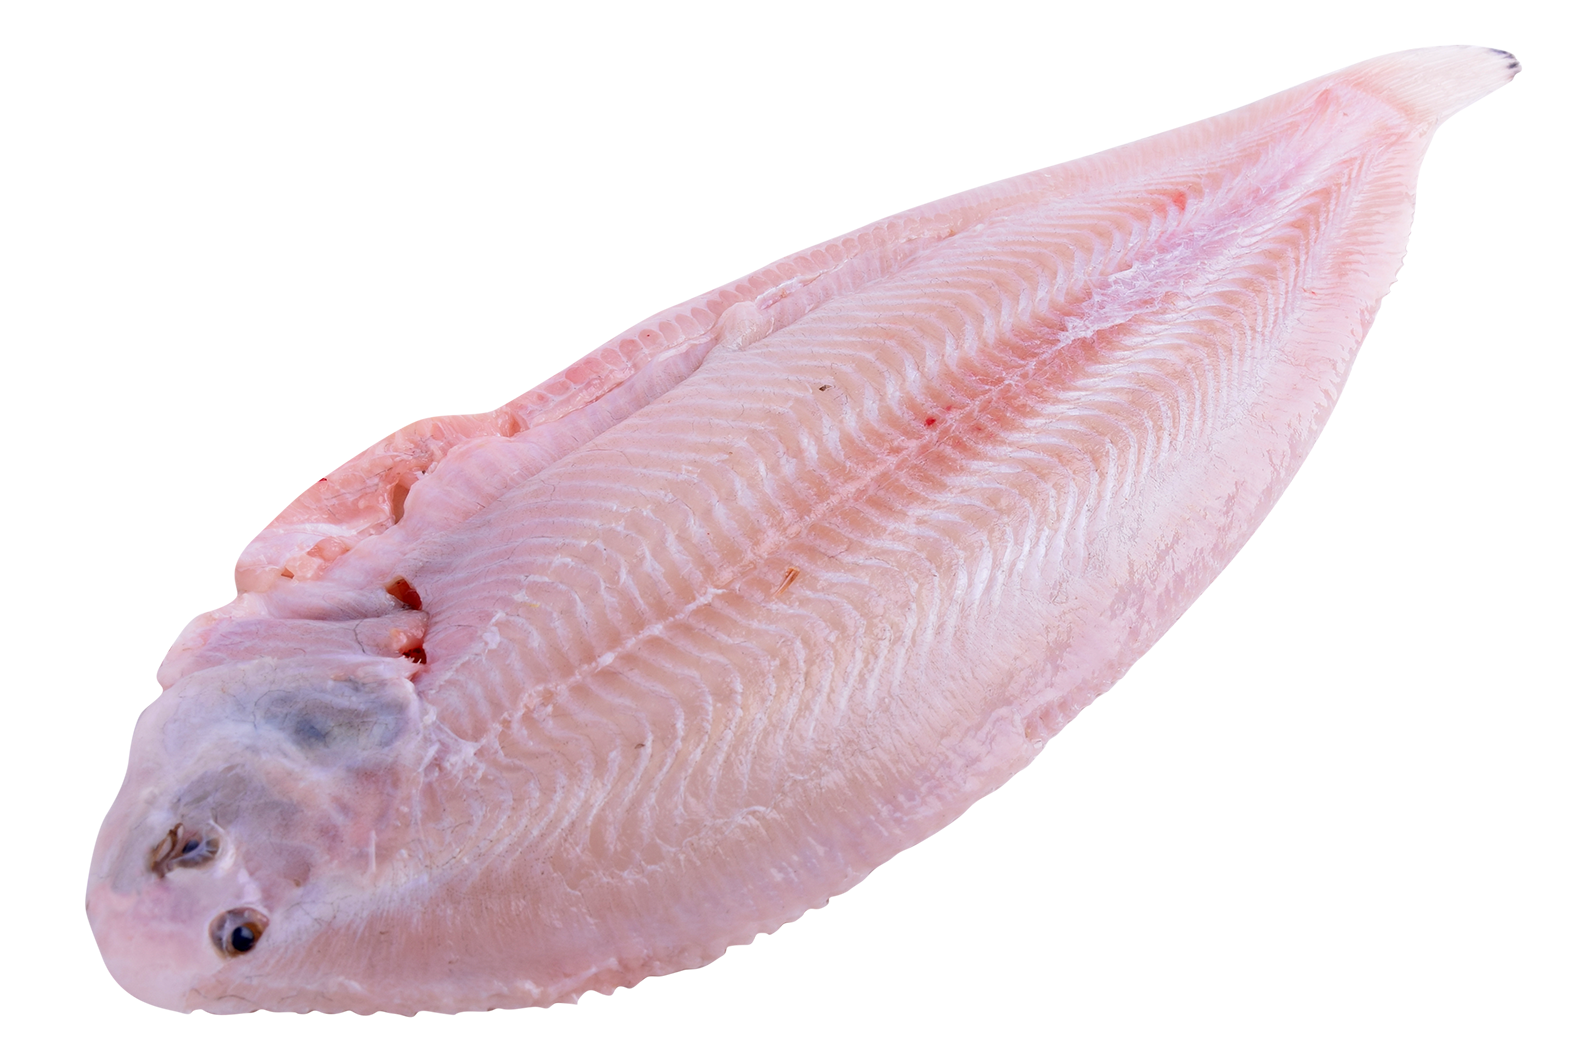 Productafbeelding DOVER SOLE SKINLESS SIZE 400-450GR